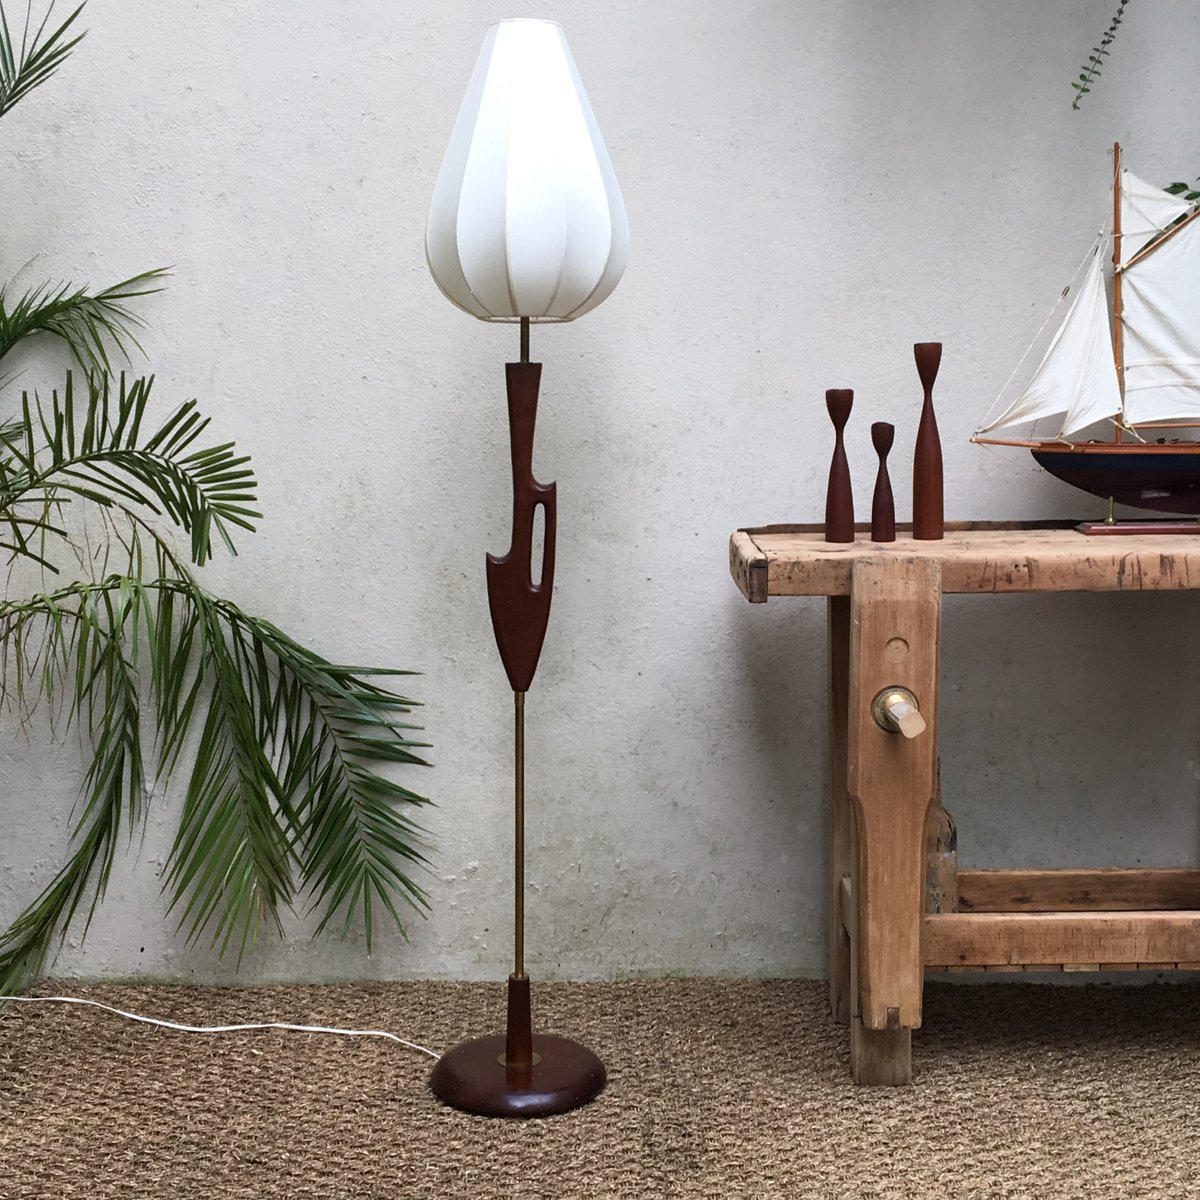 Vintage Scandinavian Free Form Floor Lamp, 1960s for sale at Pamono